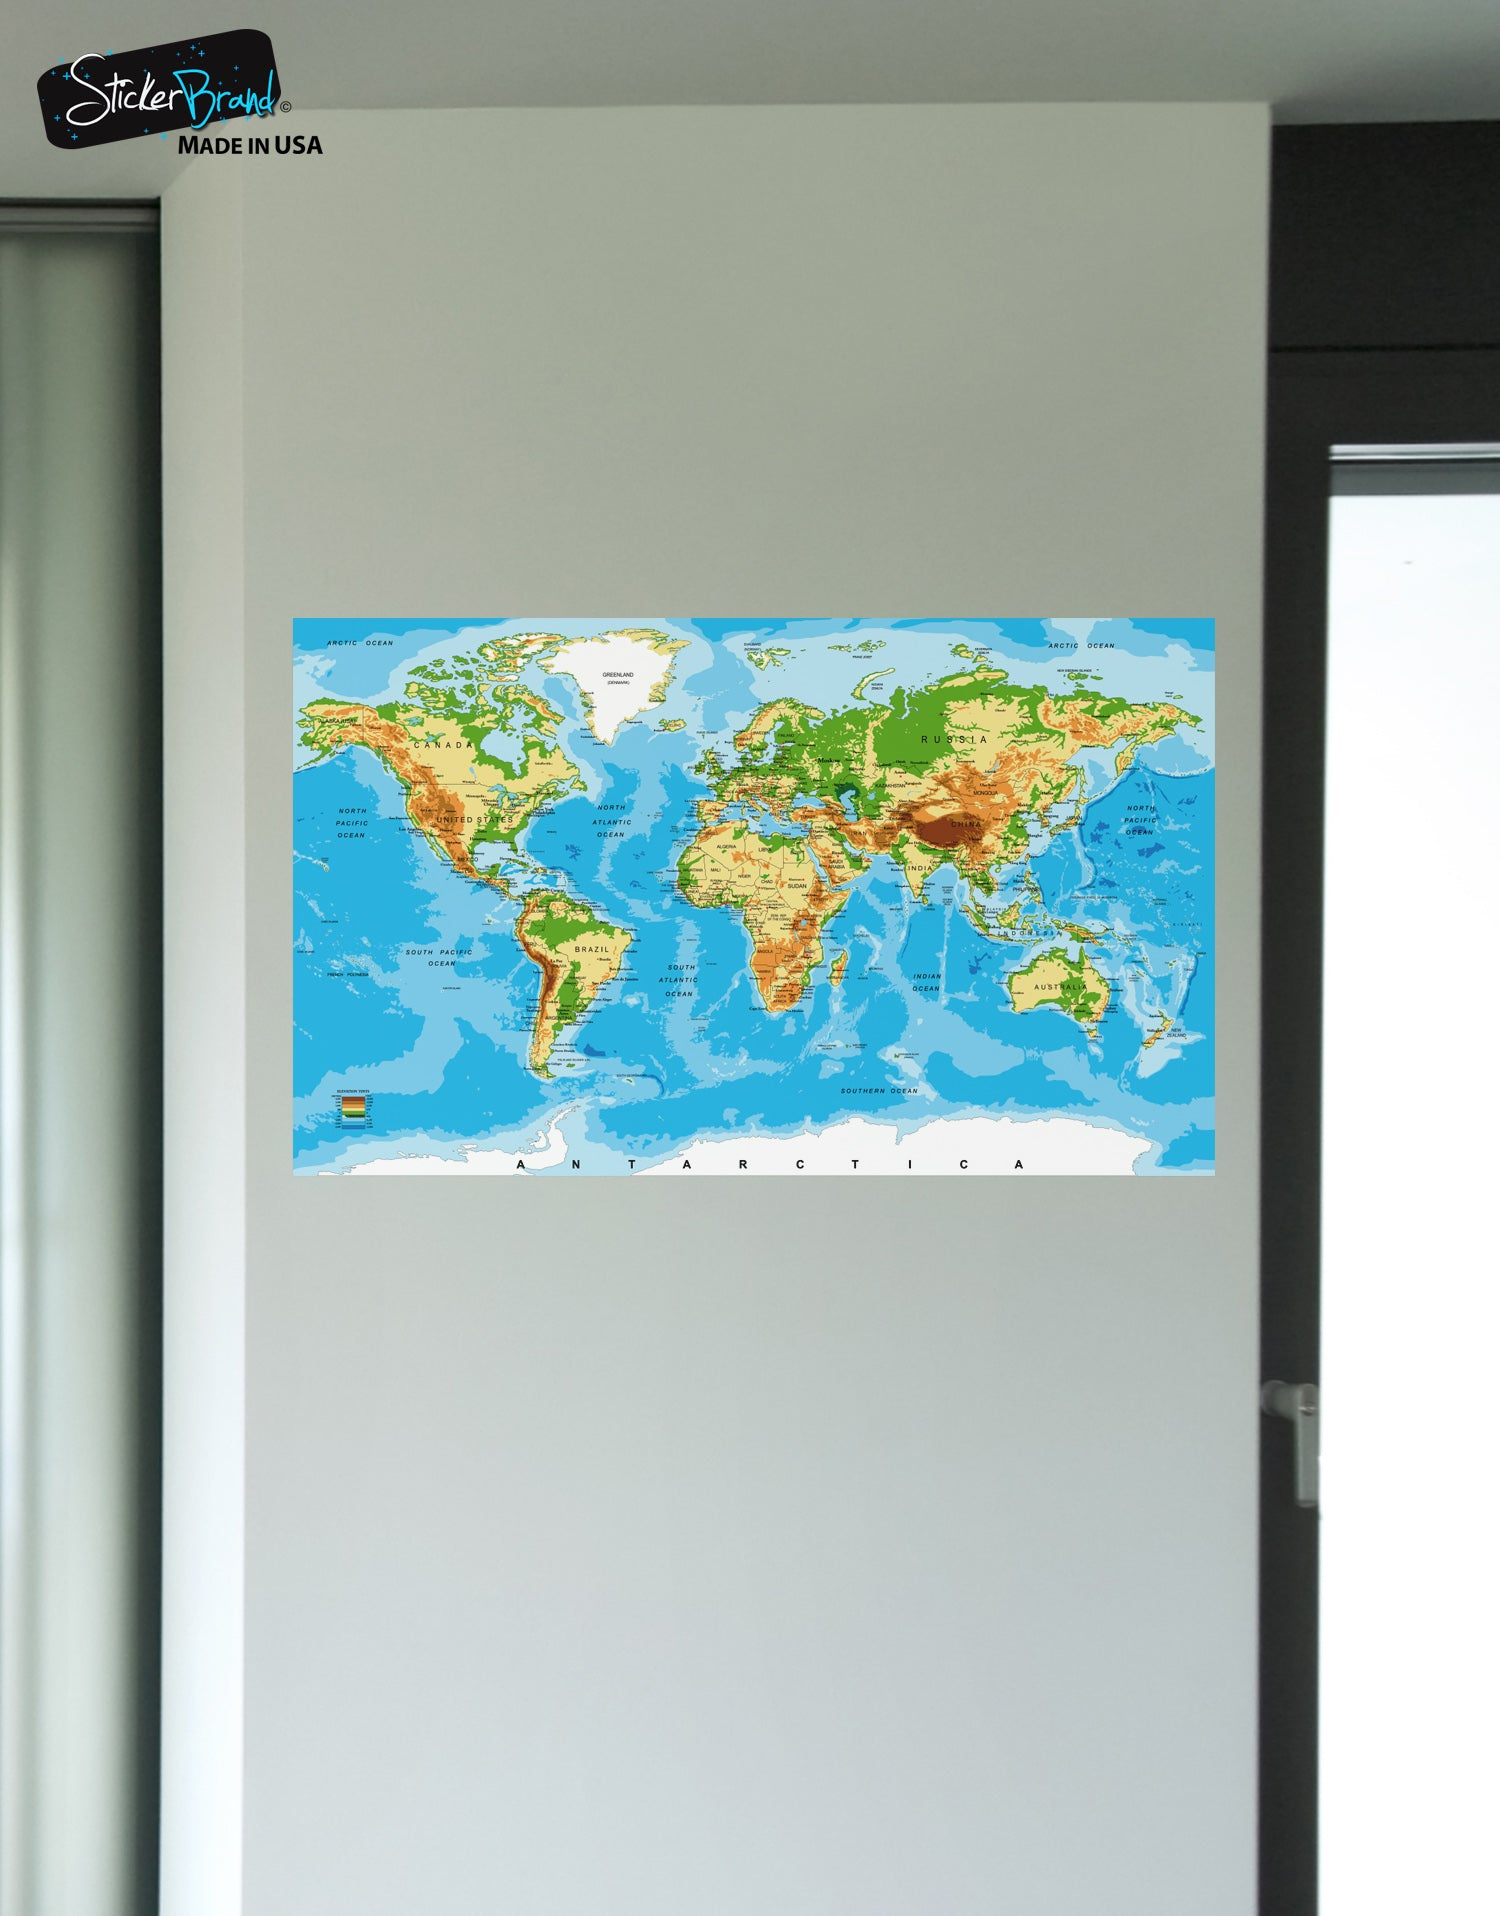 World map poster educational wall map guide with elevation chart p1 world map poster educational wall map guide with elevation chart p1002 gumiabroncs Choice Image